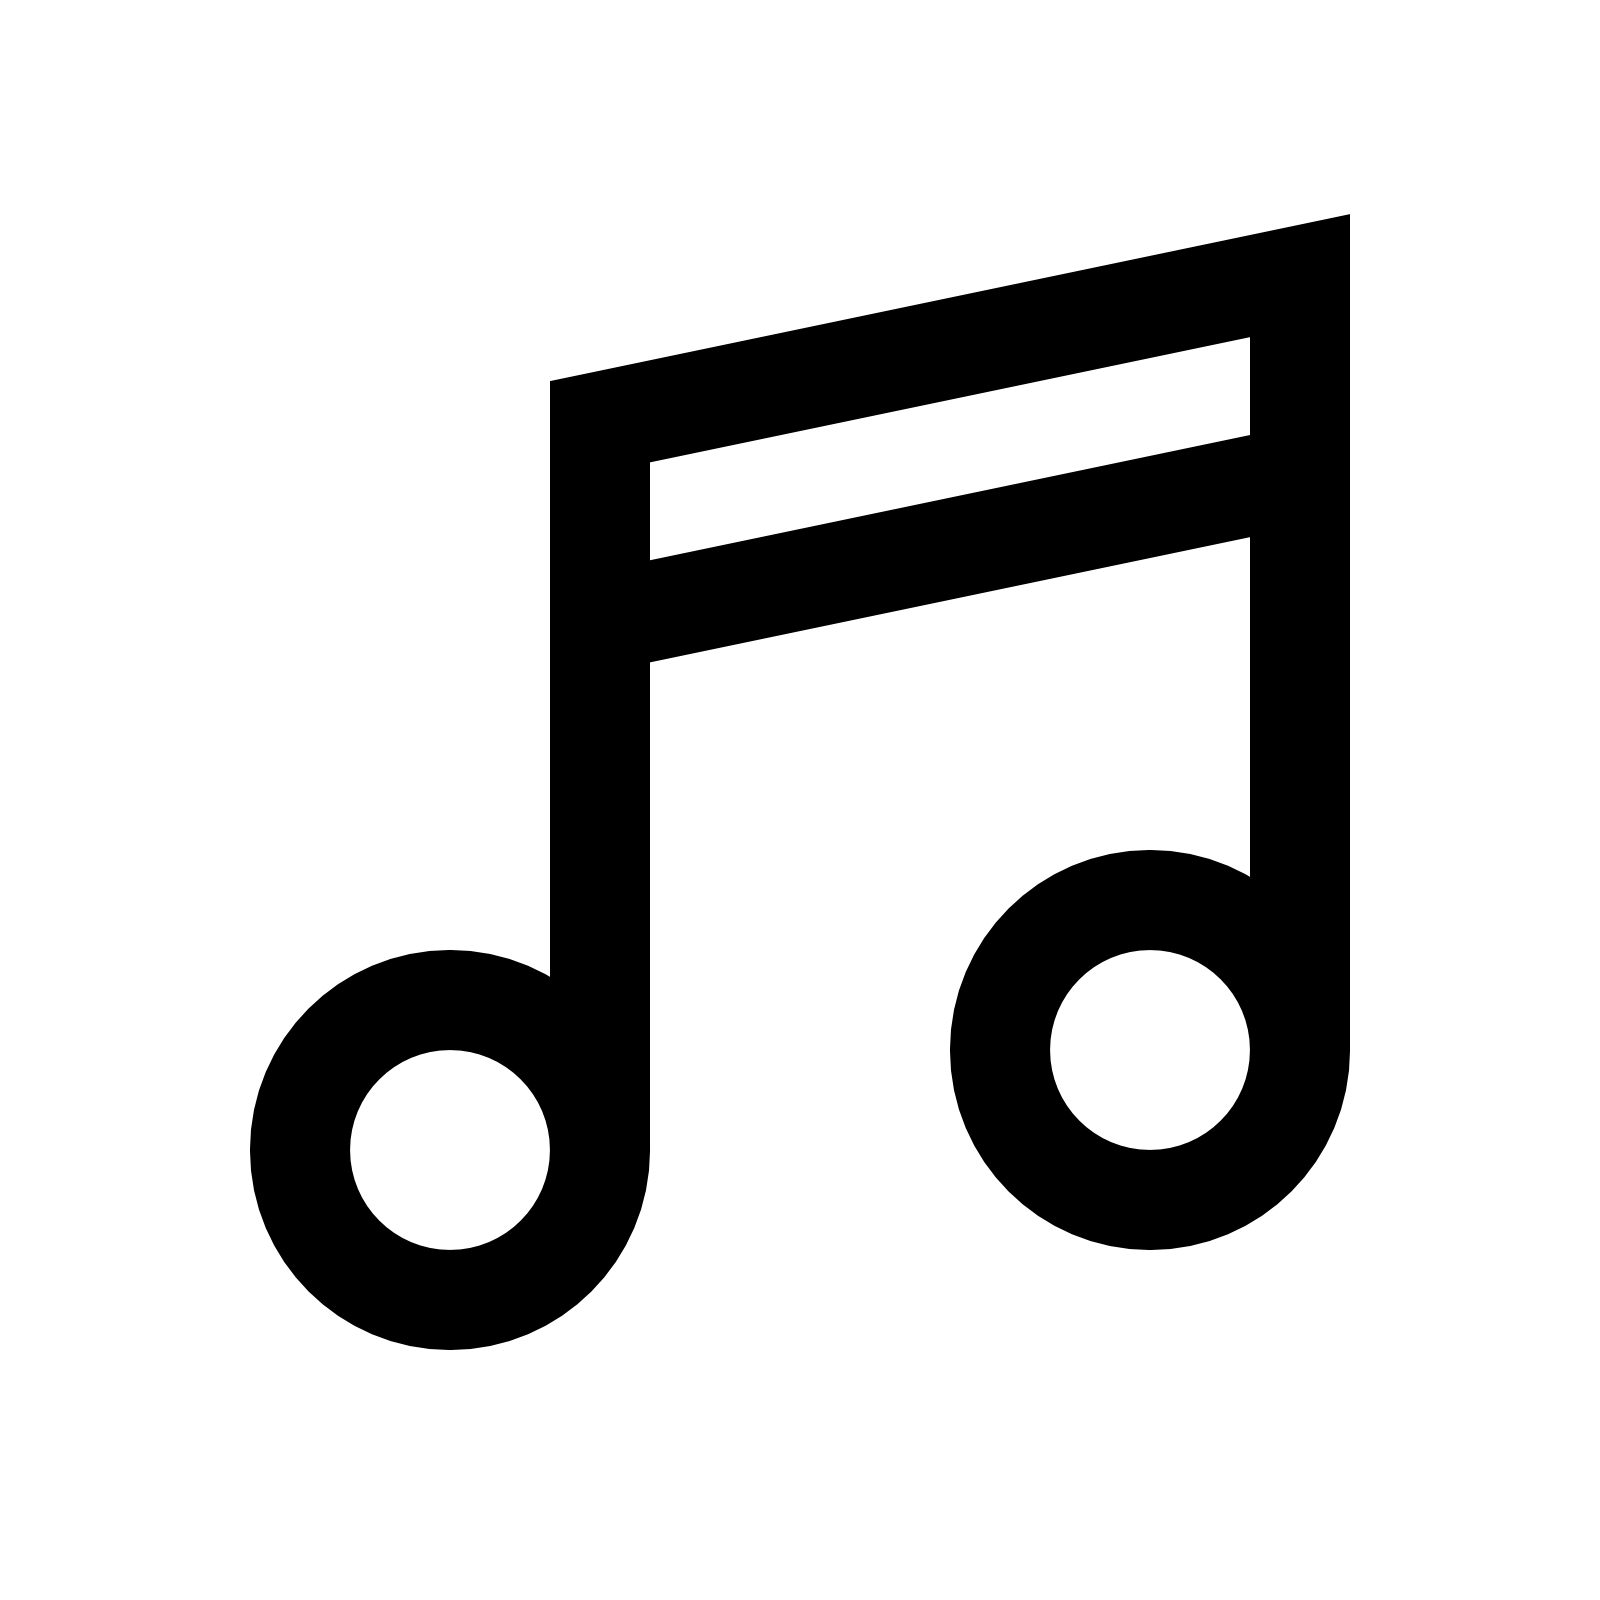 Drawn music notes transparent white Icon Free Icons8 Download Musical